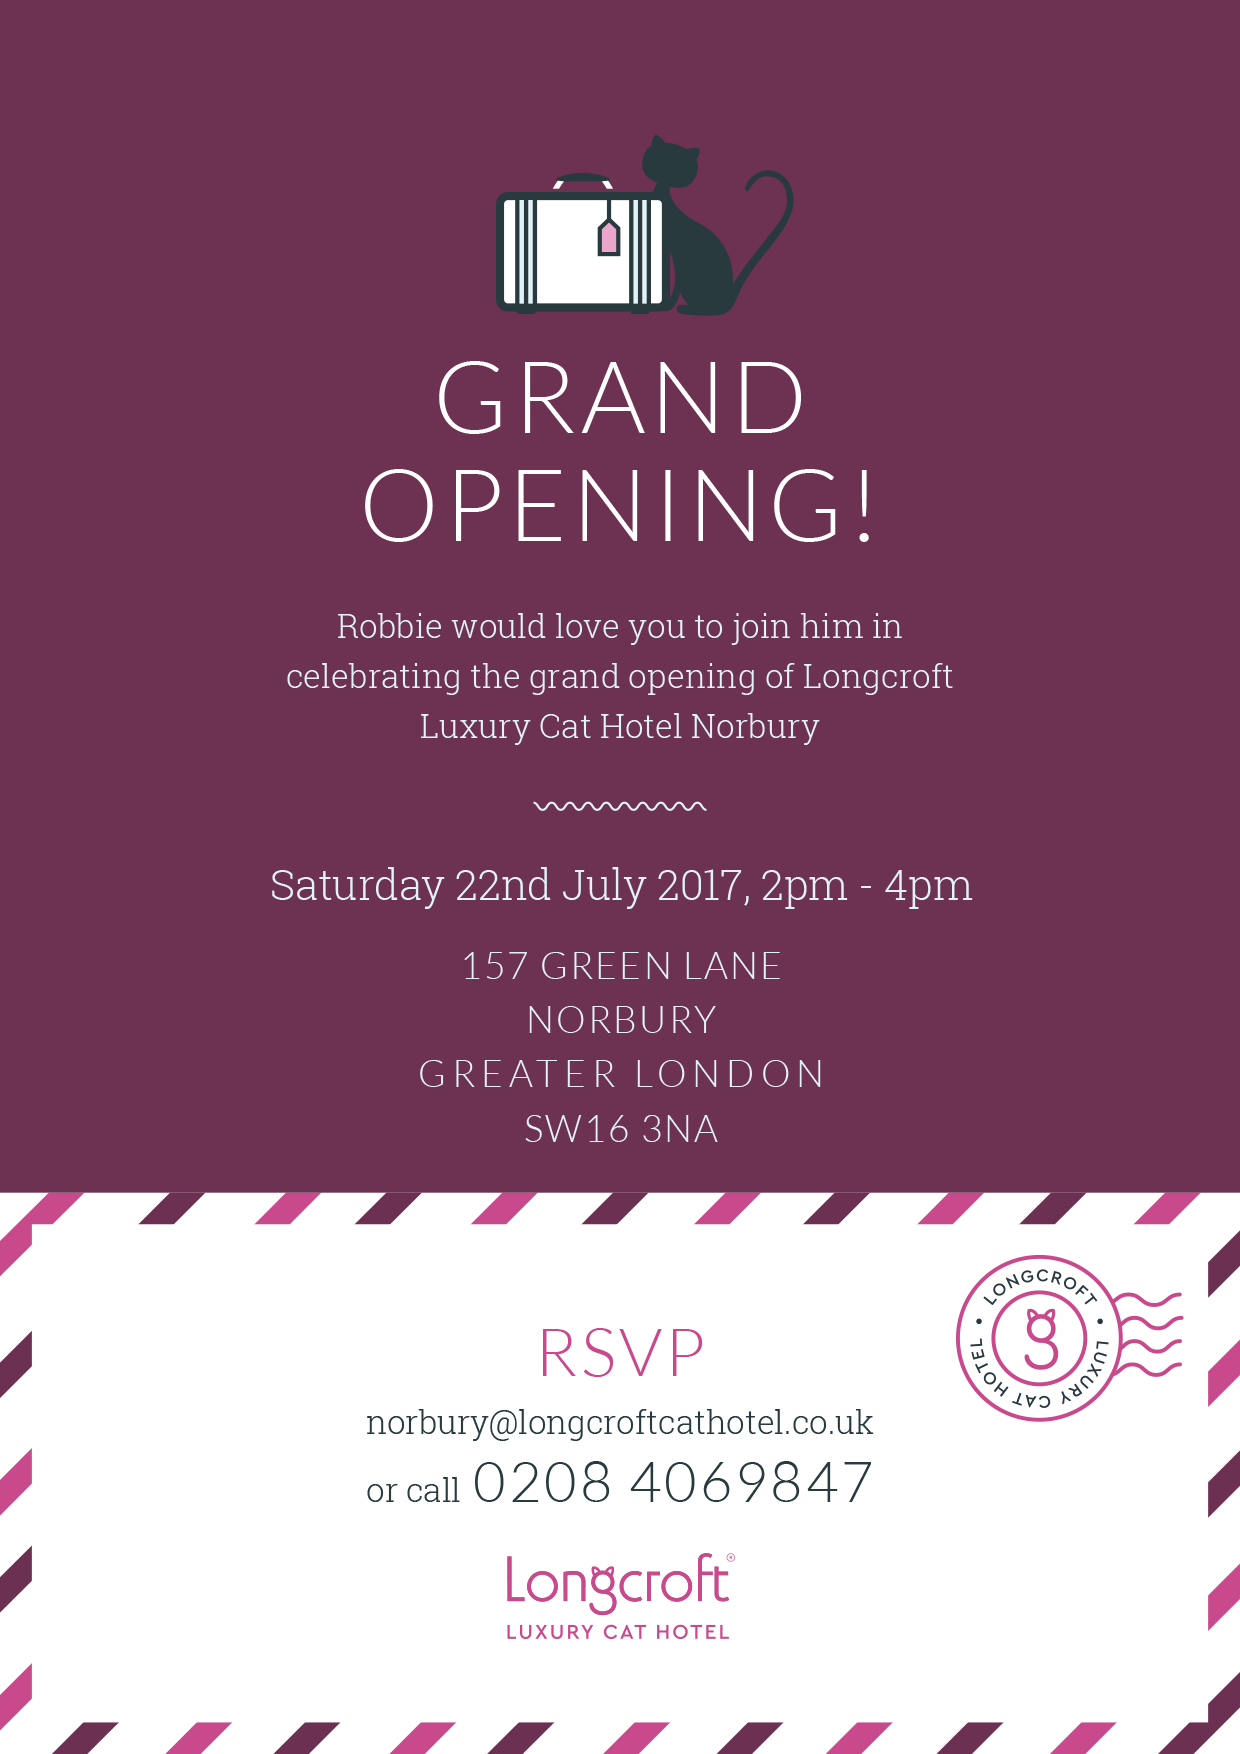 Grand Opening - Longcroft Luxury Cat Hotel Norbury